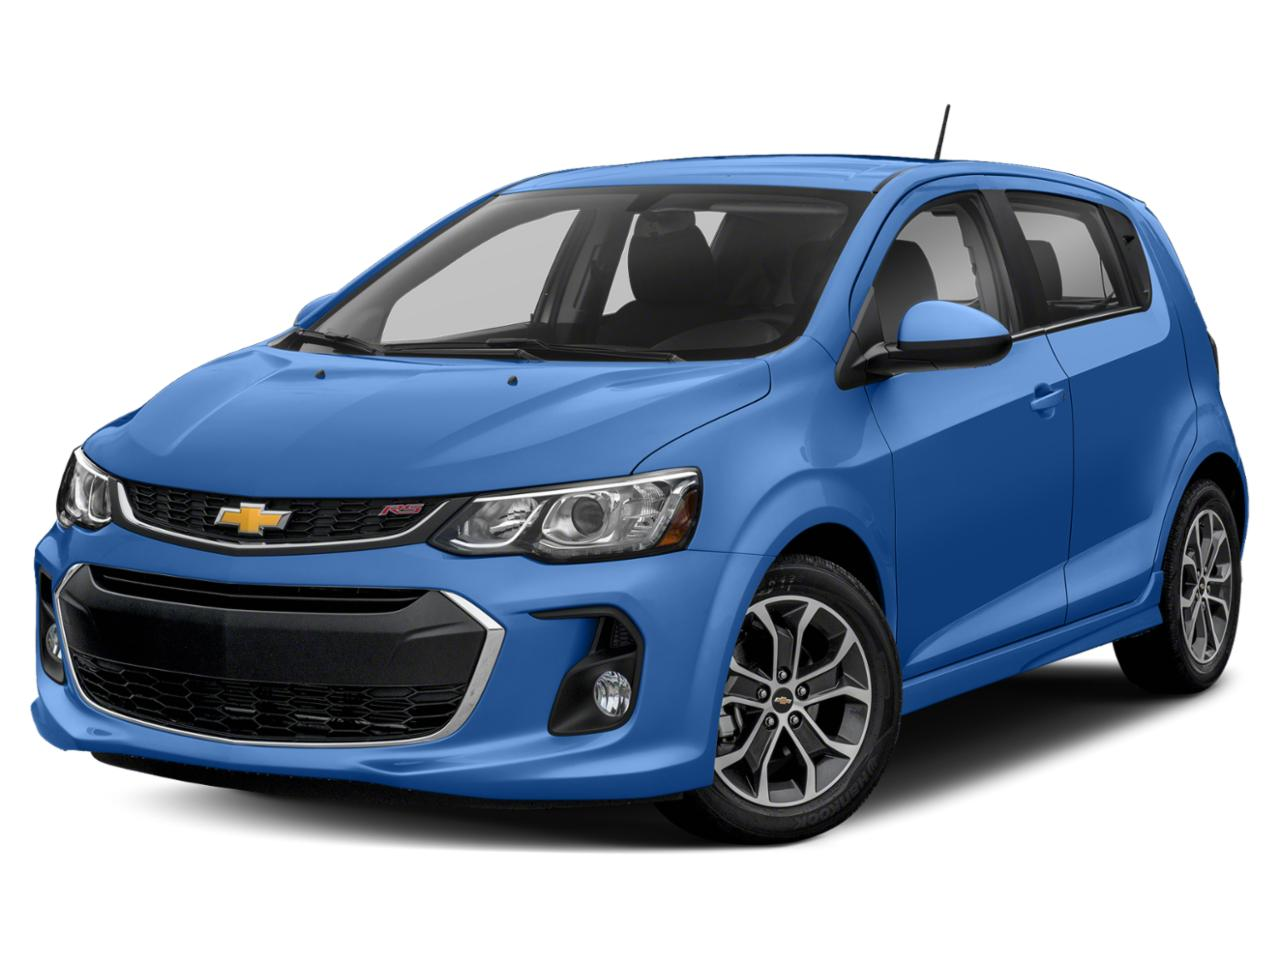 2020 Chevrolet Sonic Vehicle Photo in Denville, NJ 07834